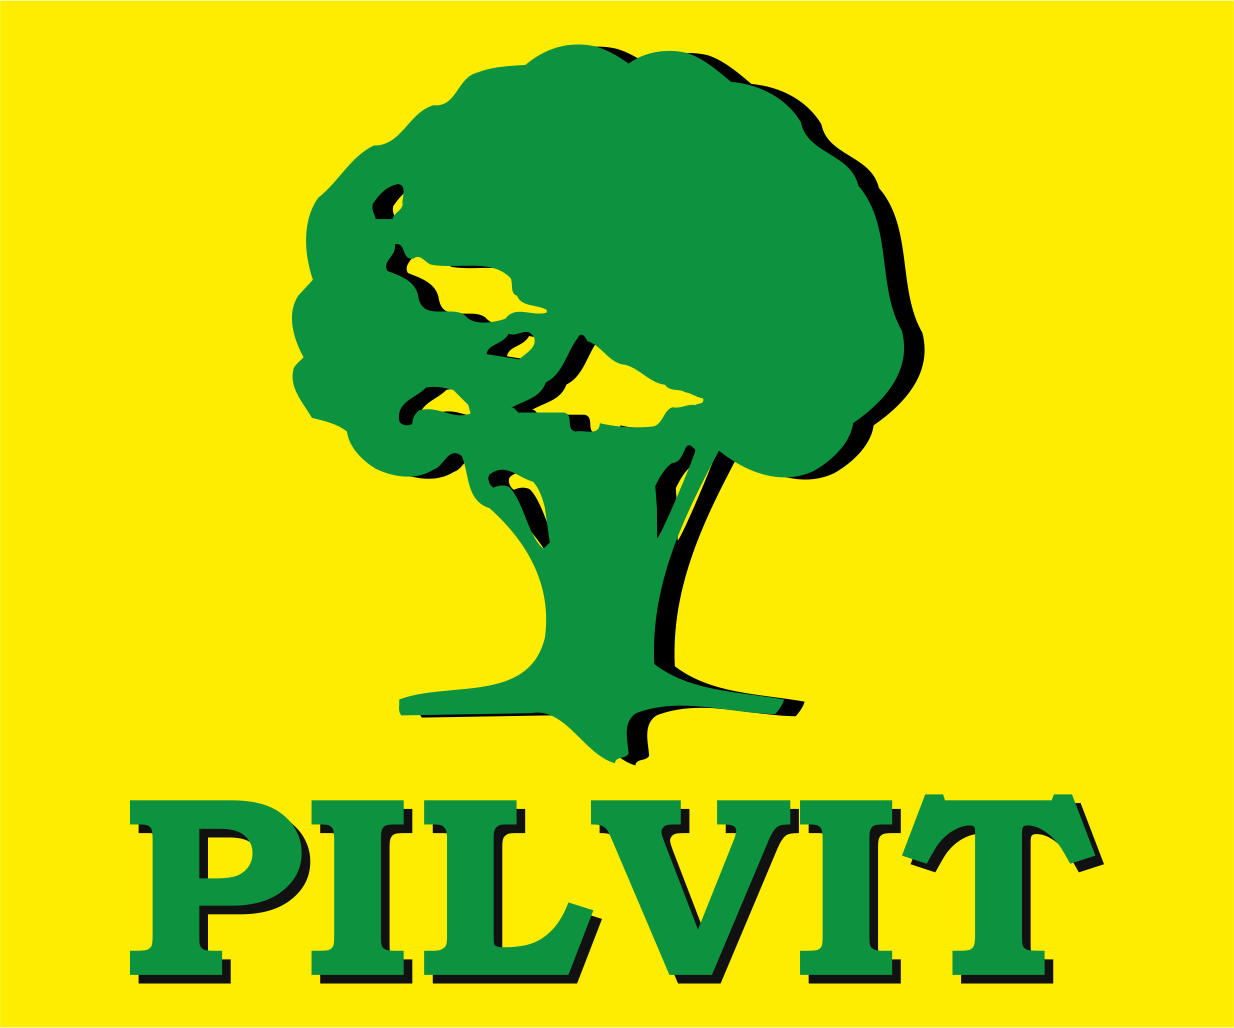 point_pilvit_logo_1